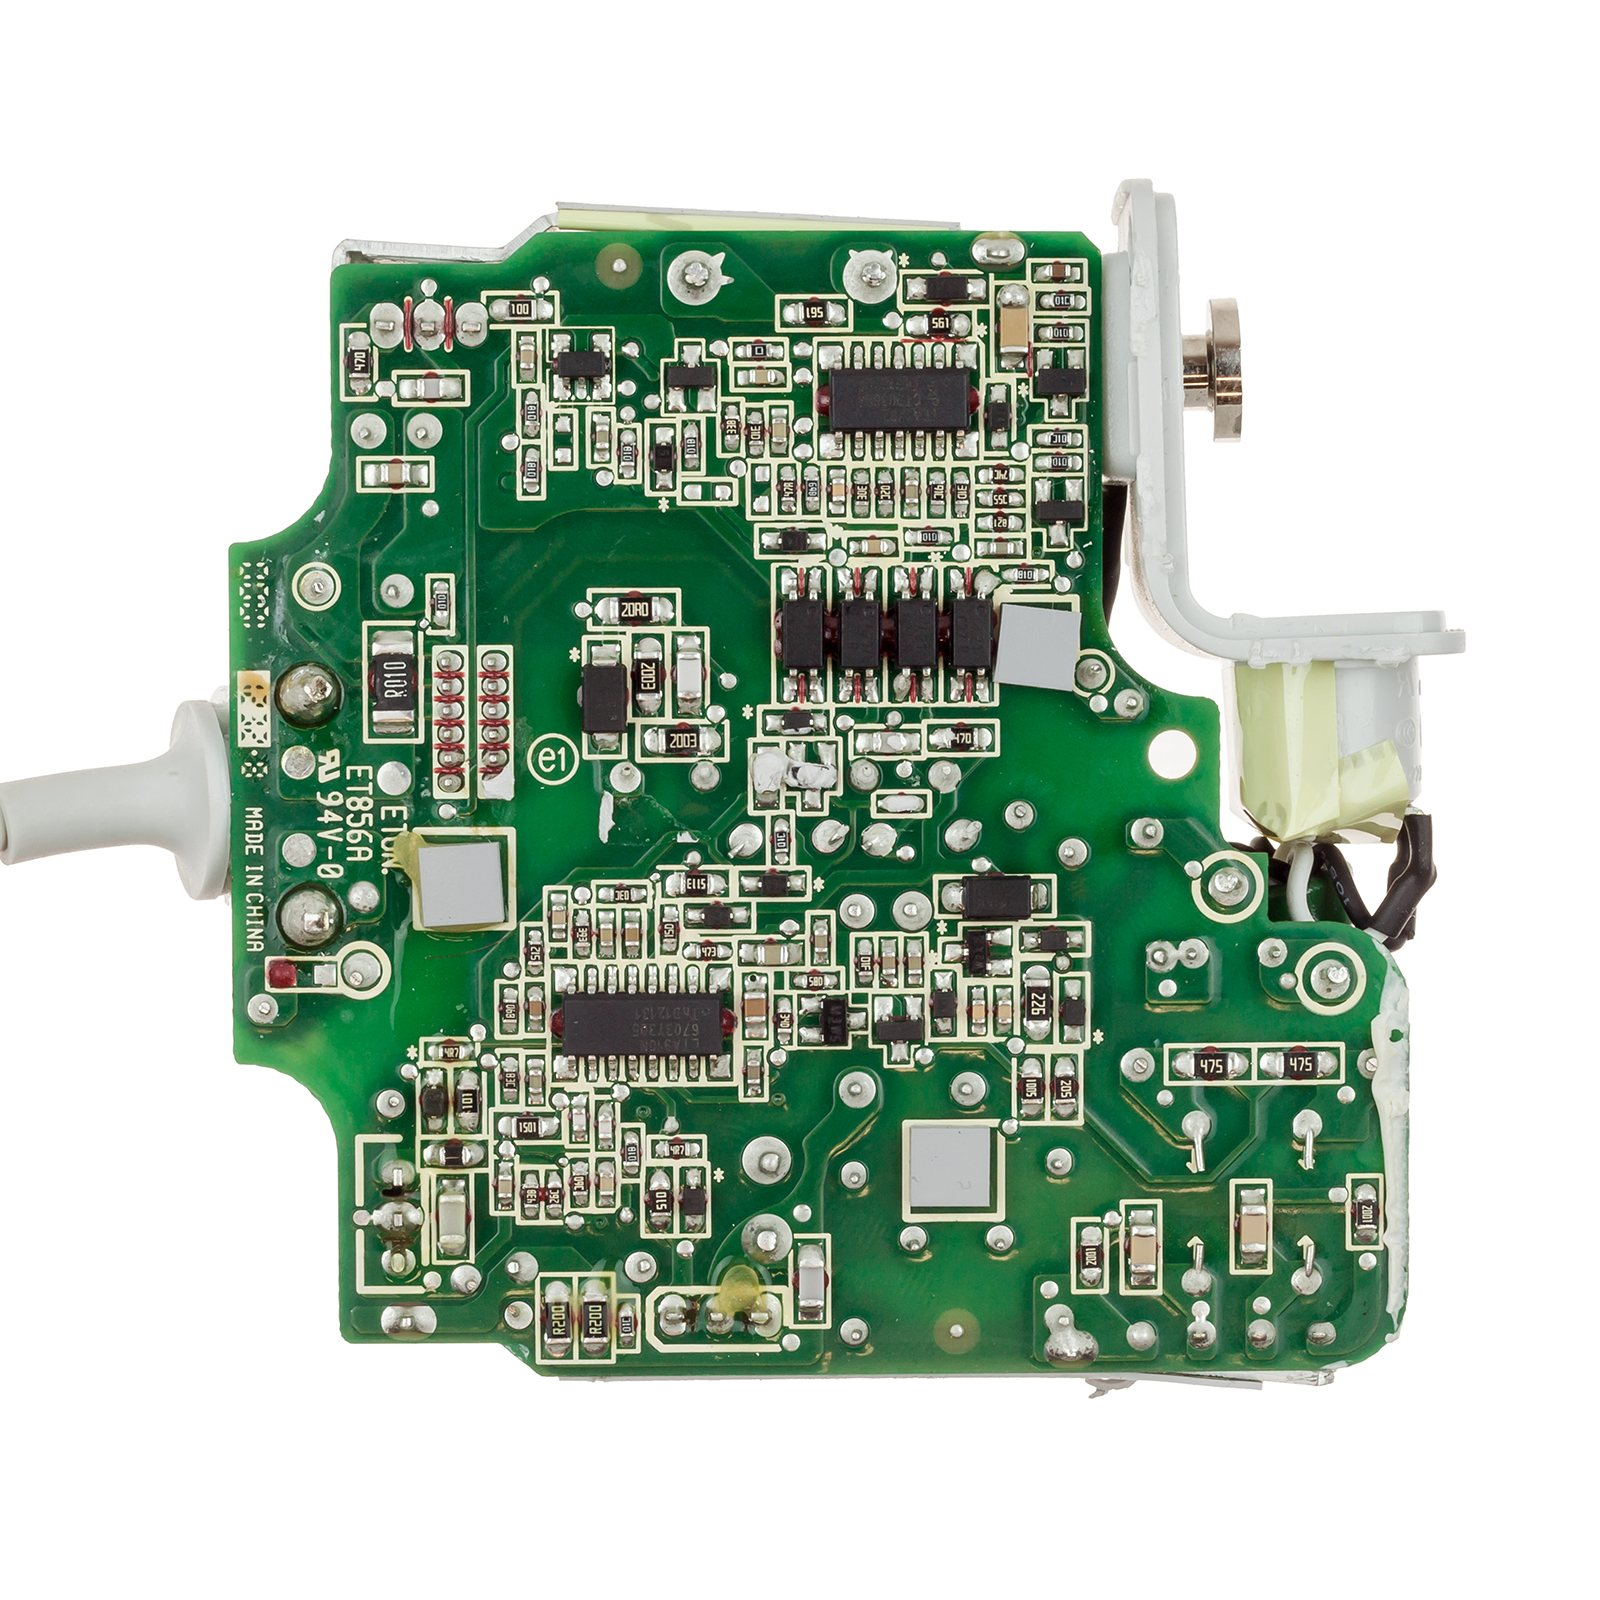 OEM MagSafe circuitry